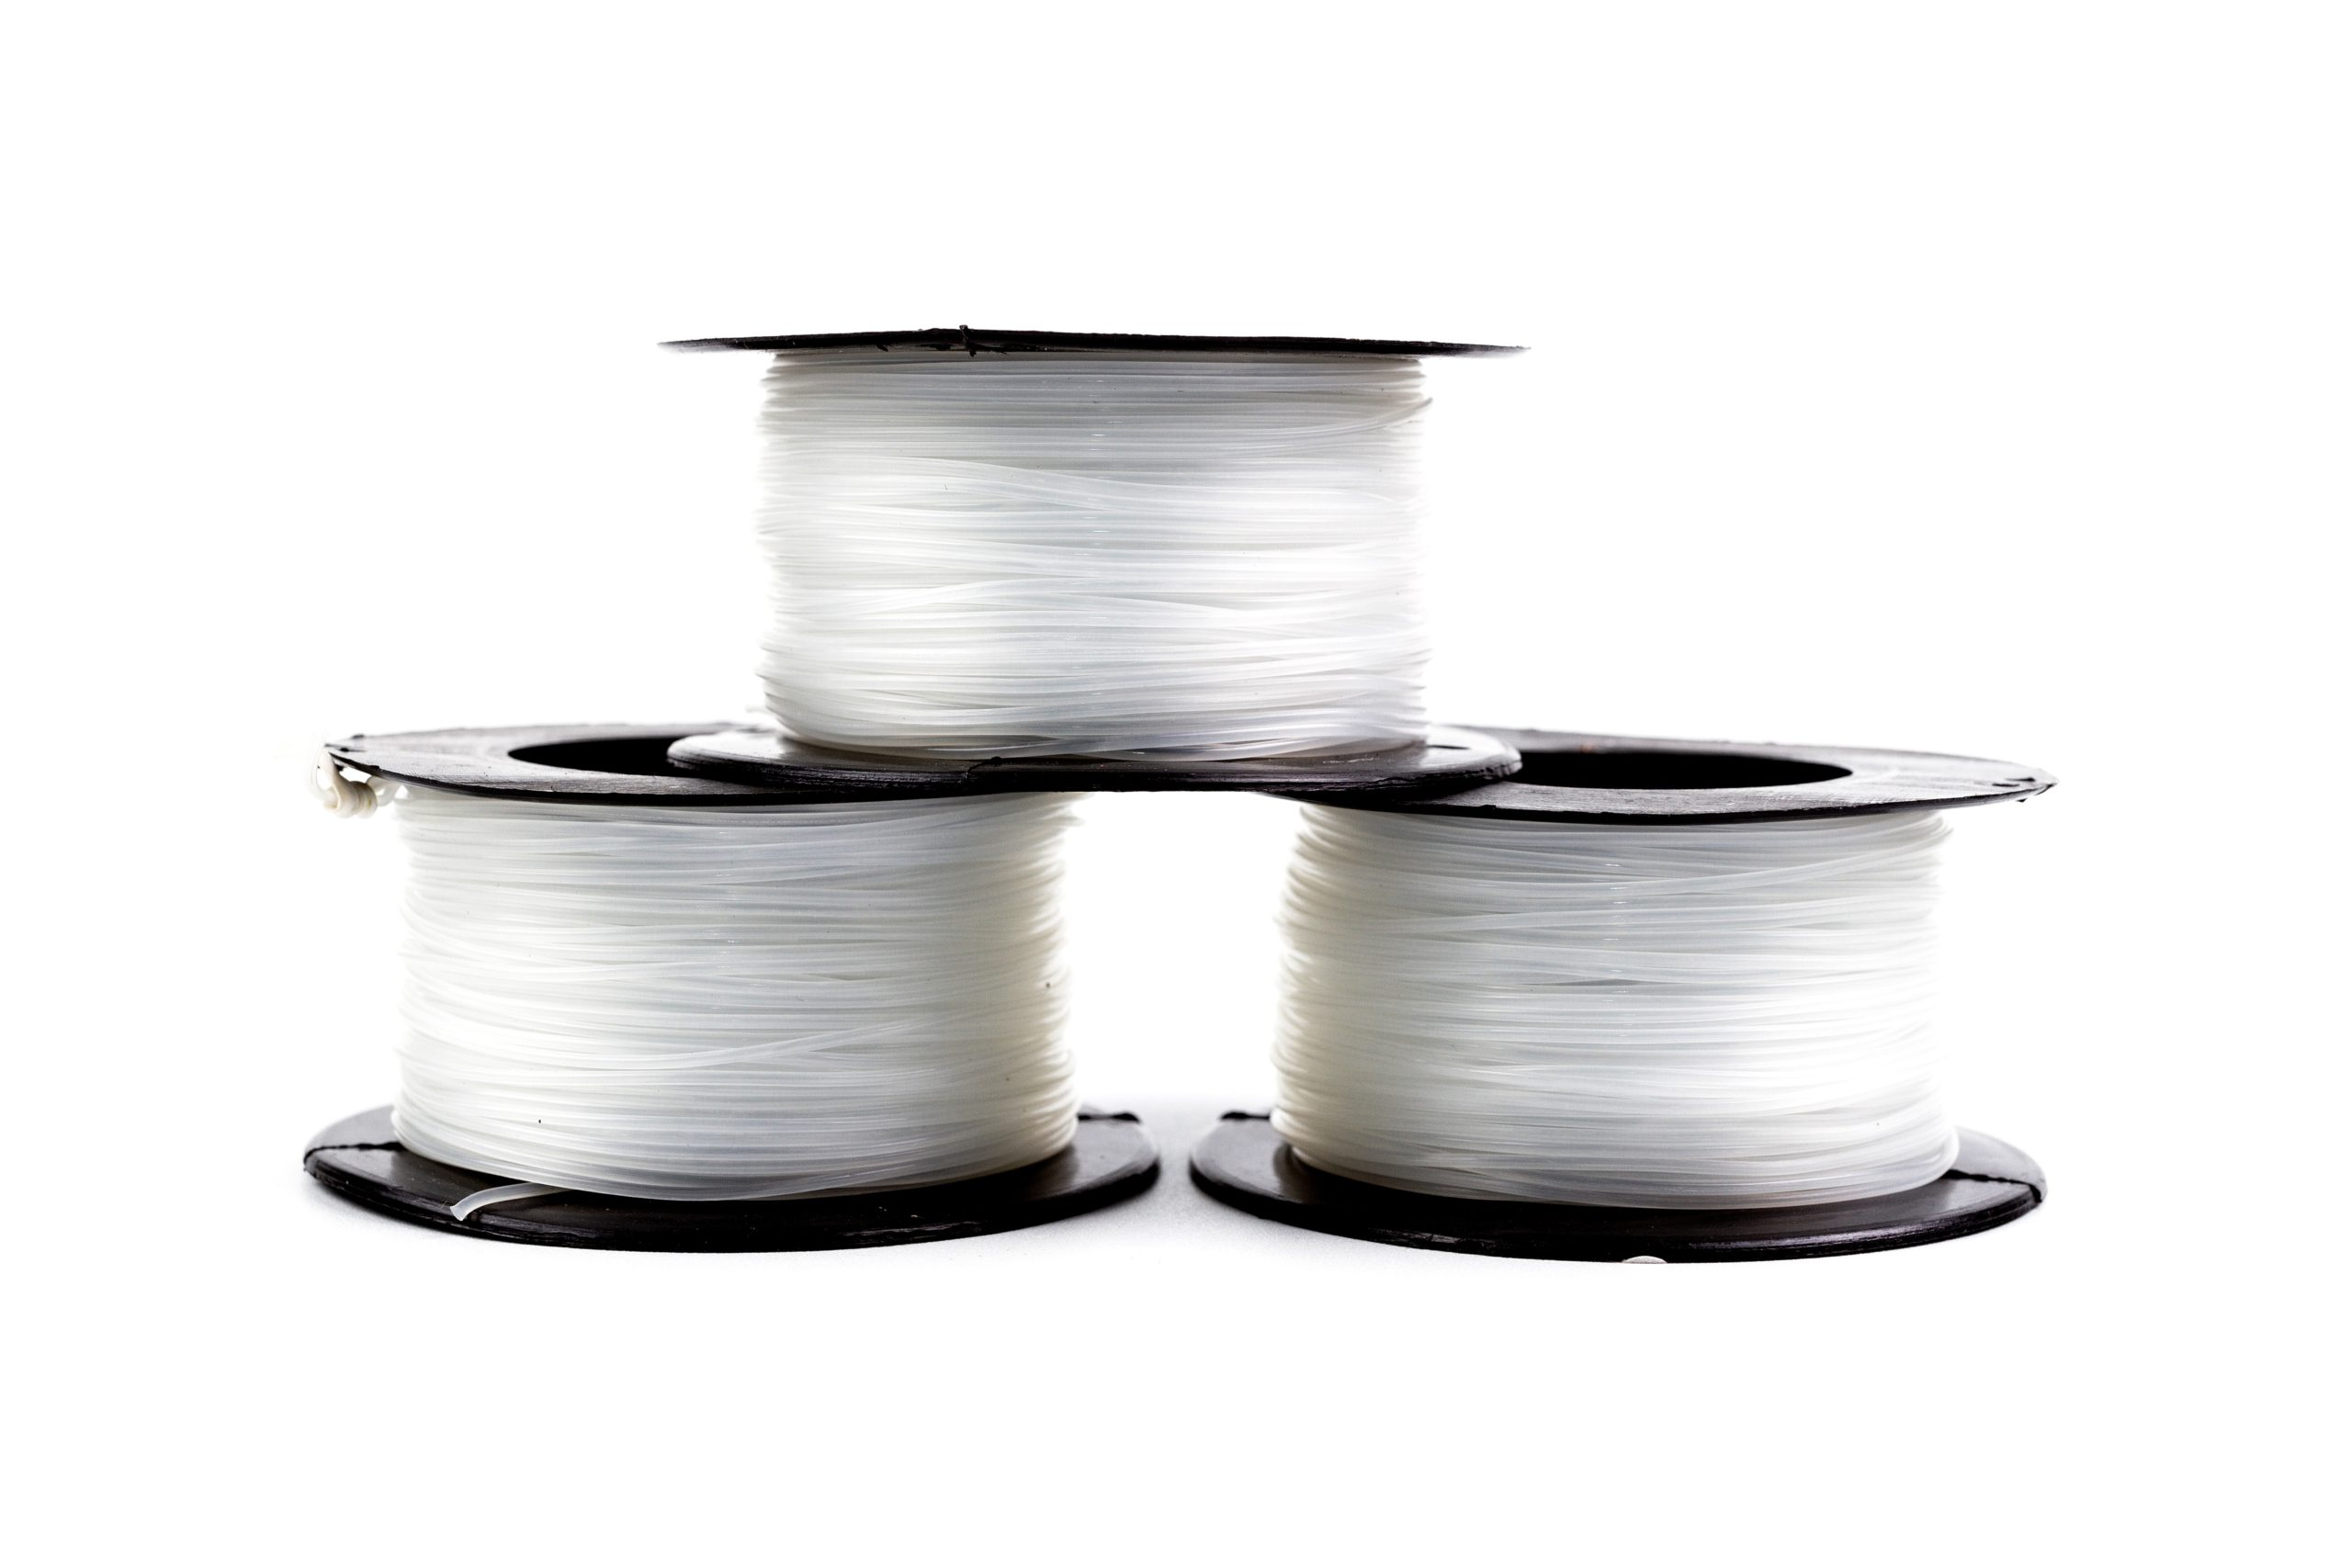 Fishing line spools.